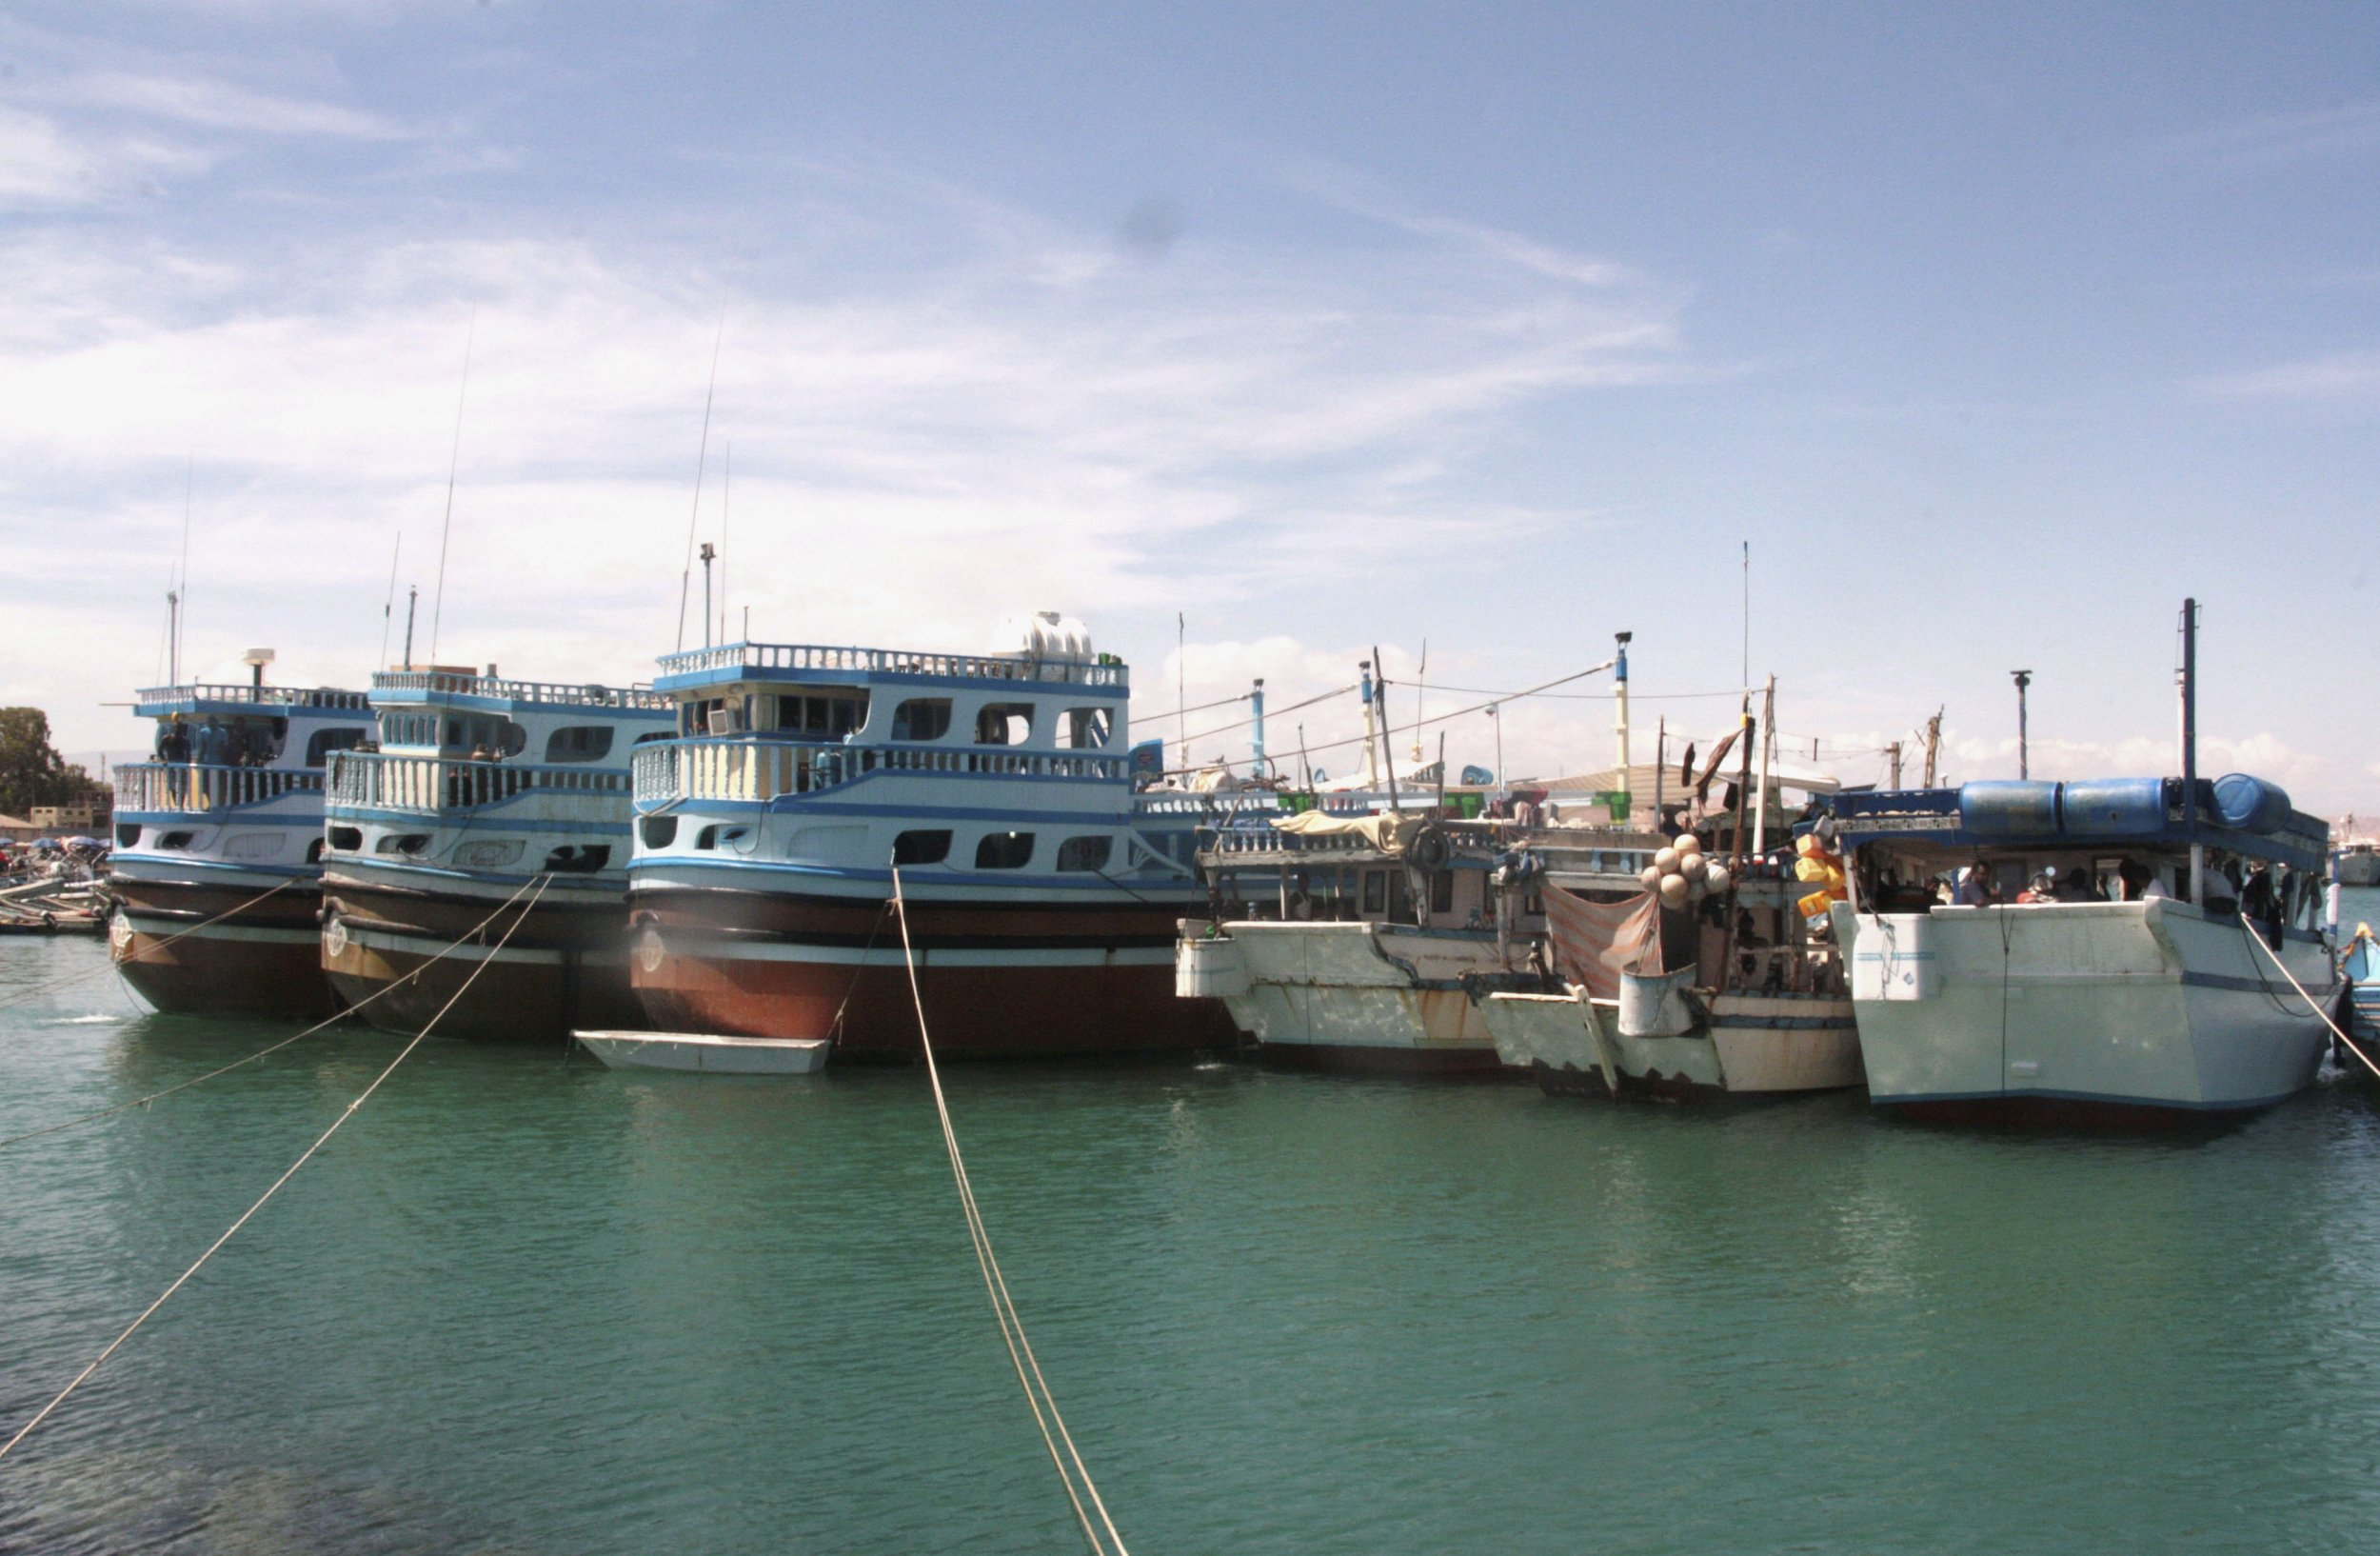 Fishing vessels in Puntland.